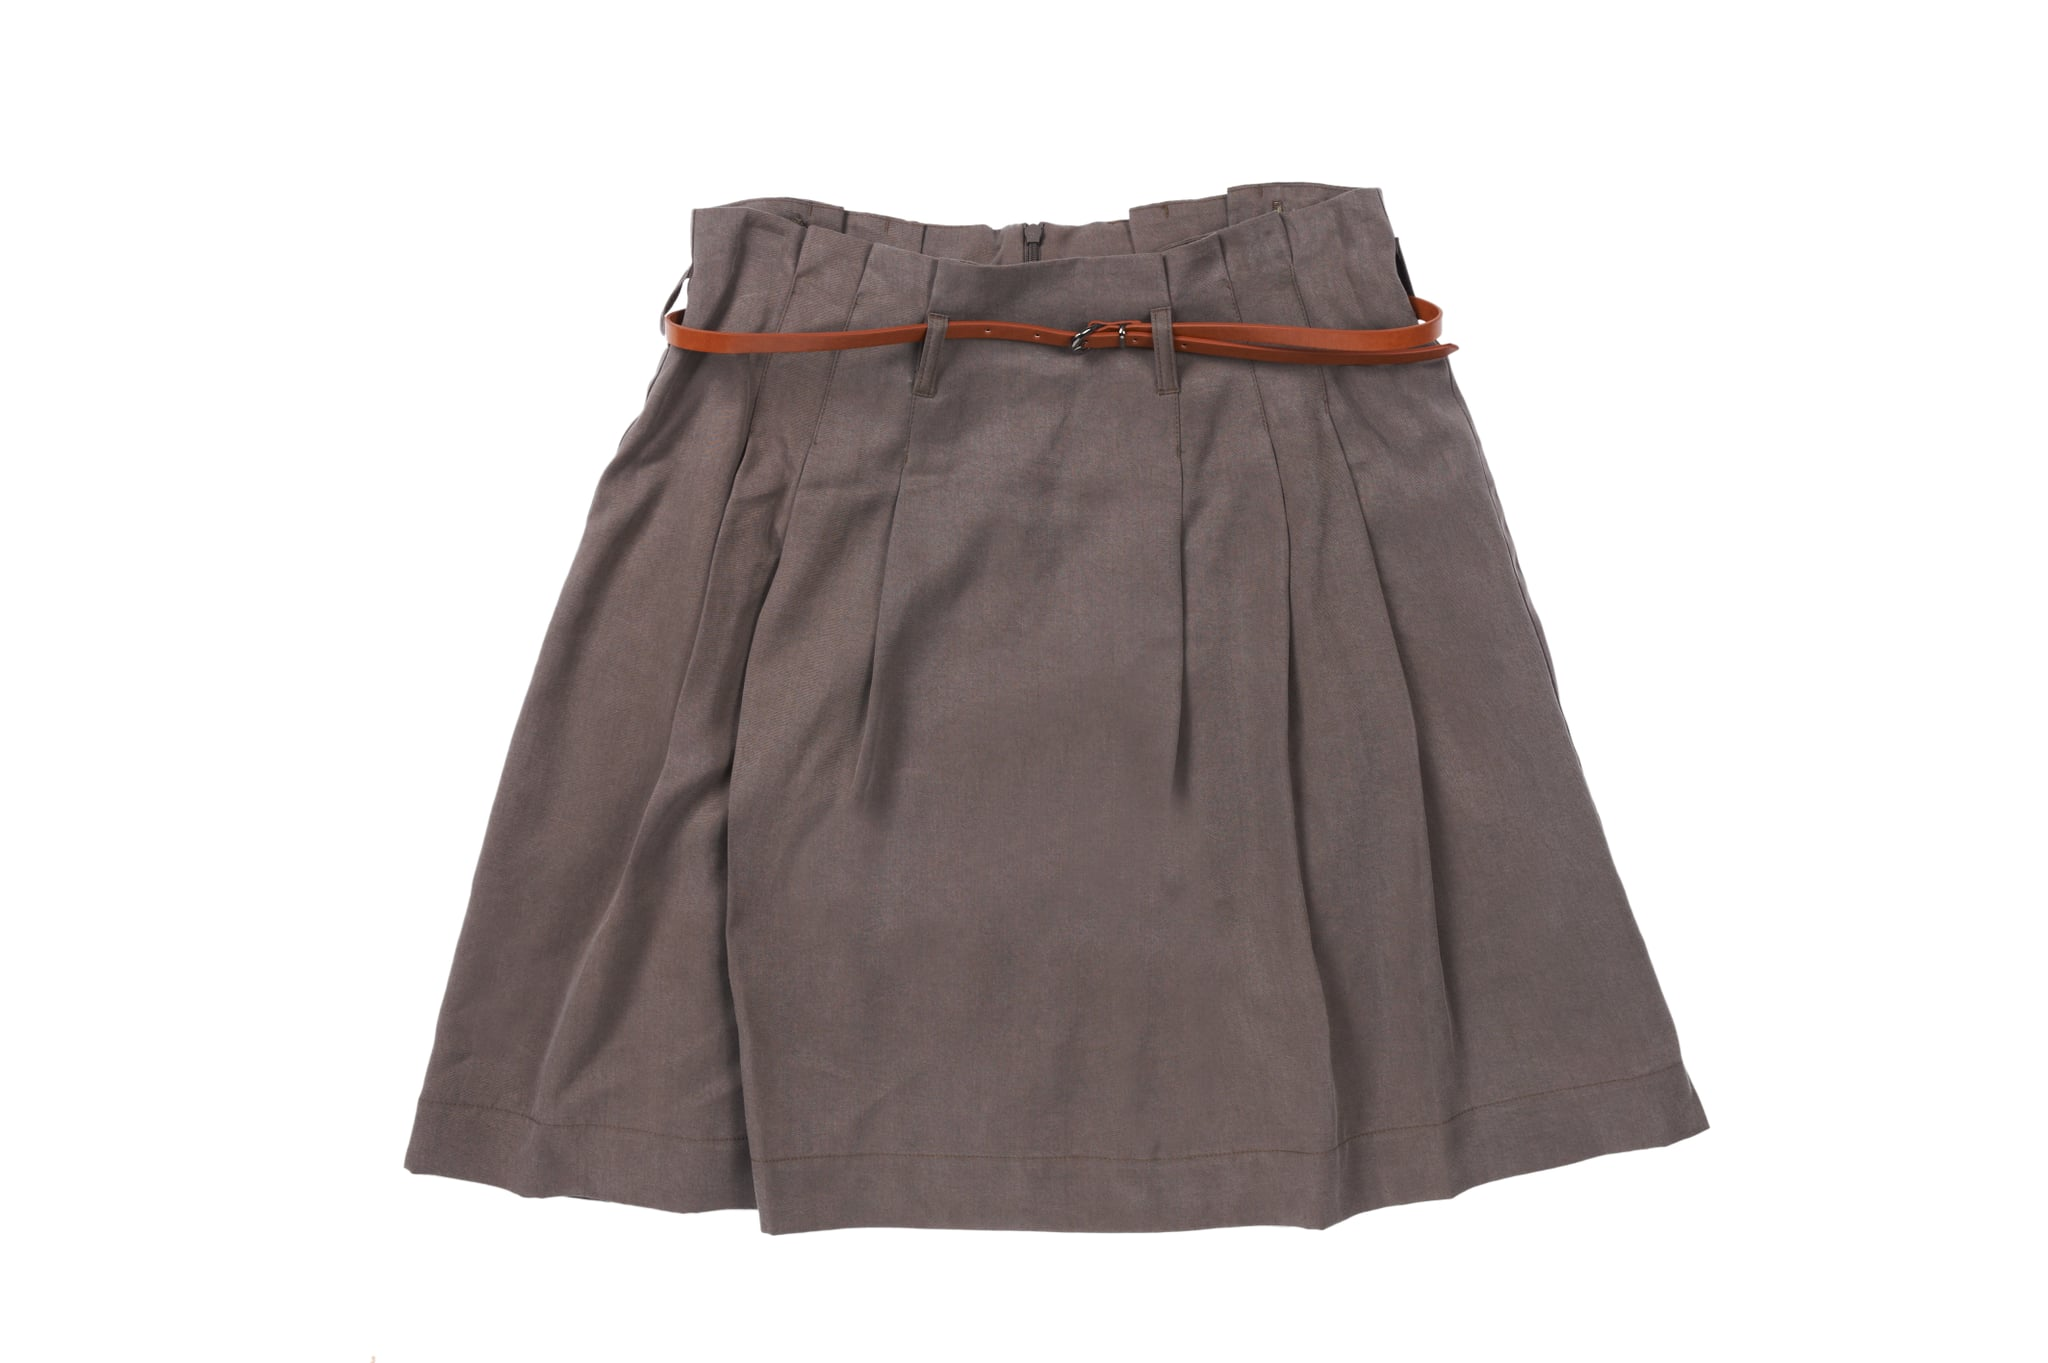 The Preppy, Pleated Skirt